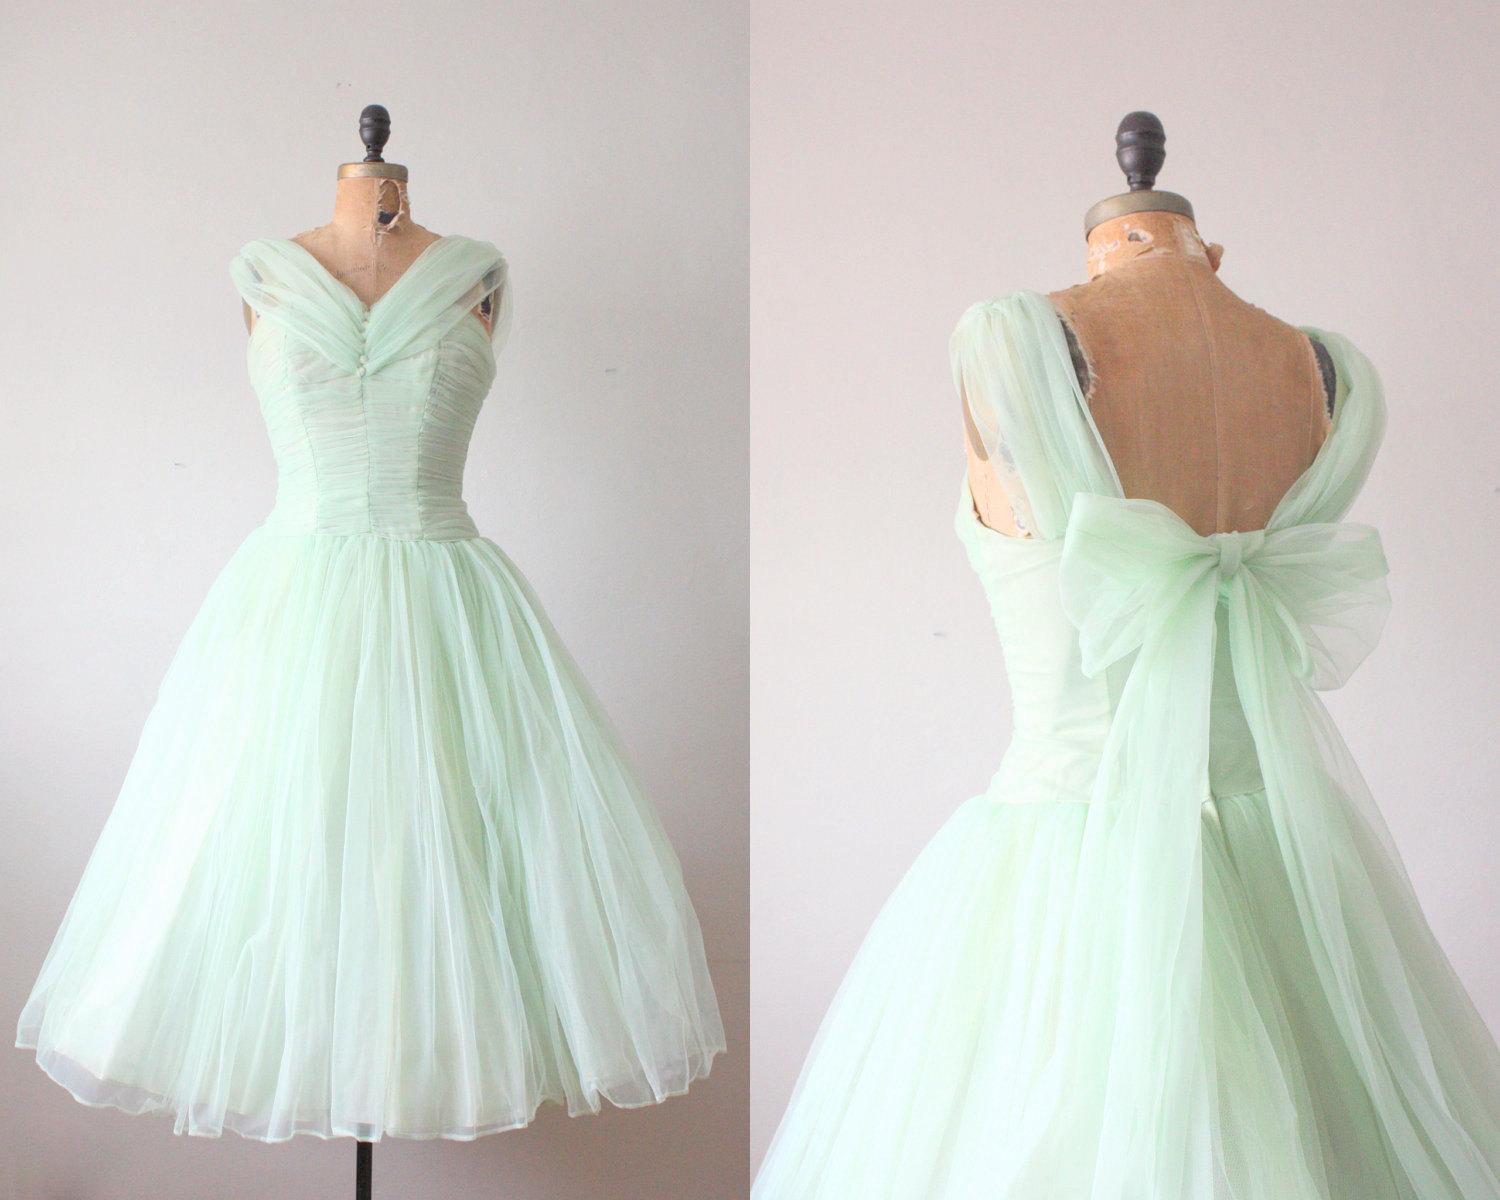 The fine living muse 2013 trending color for spring and for Mint green wedding dress